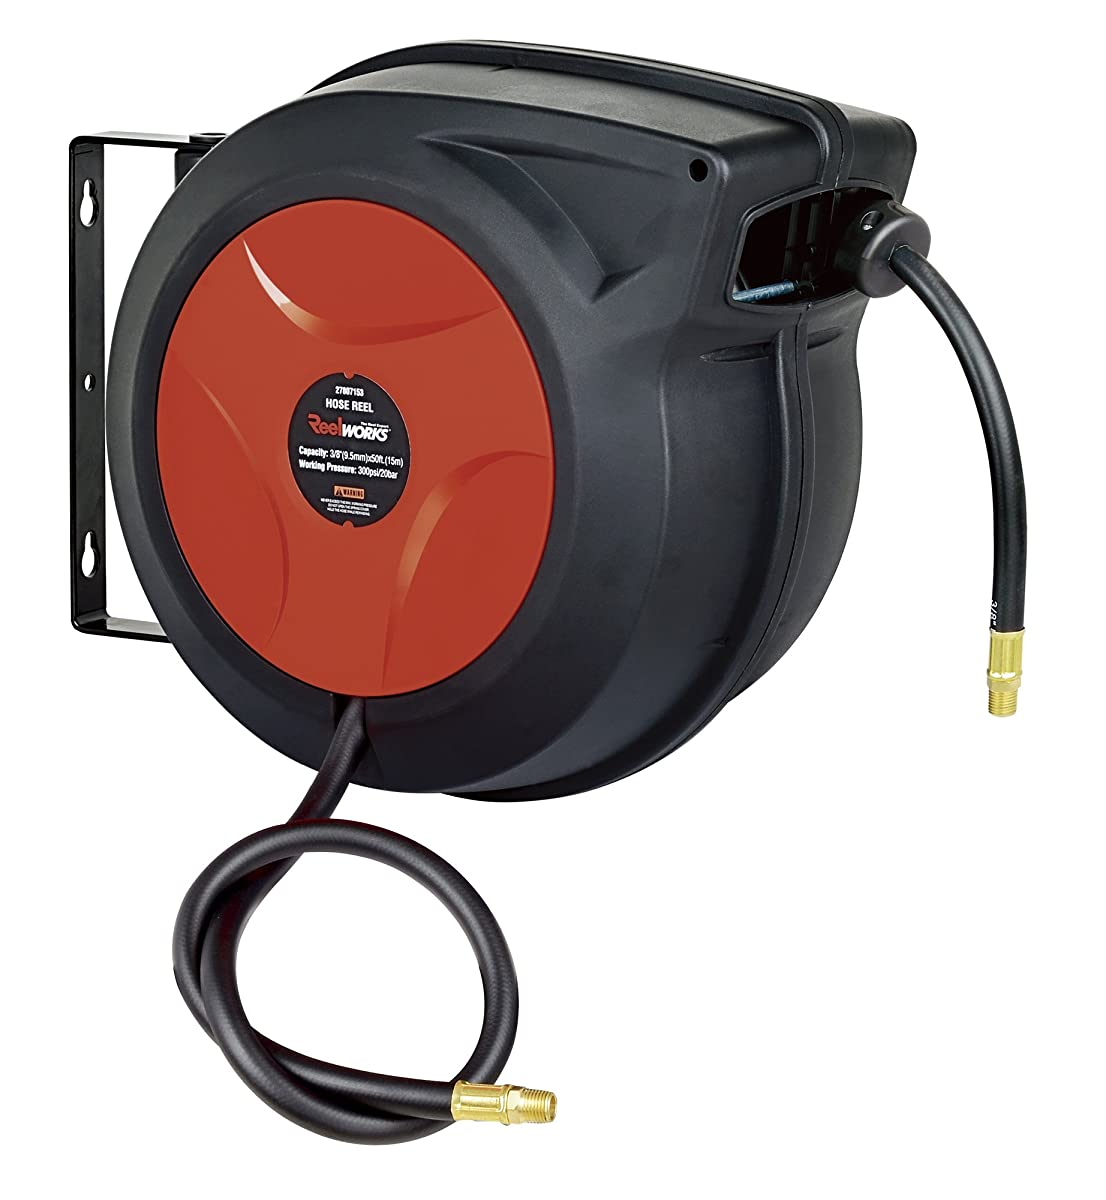 "ReelWorks 27807153A Plastic Retractable Air Compressor/Water Hose Reel with 3/8"" x 50 Hybrid Polymer Hose, Max. 300 psi"